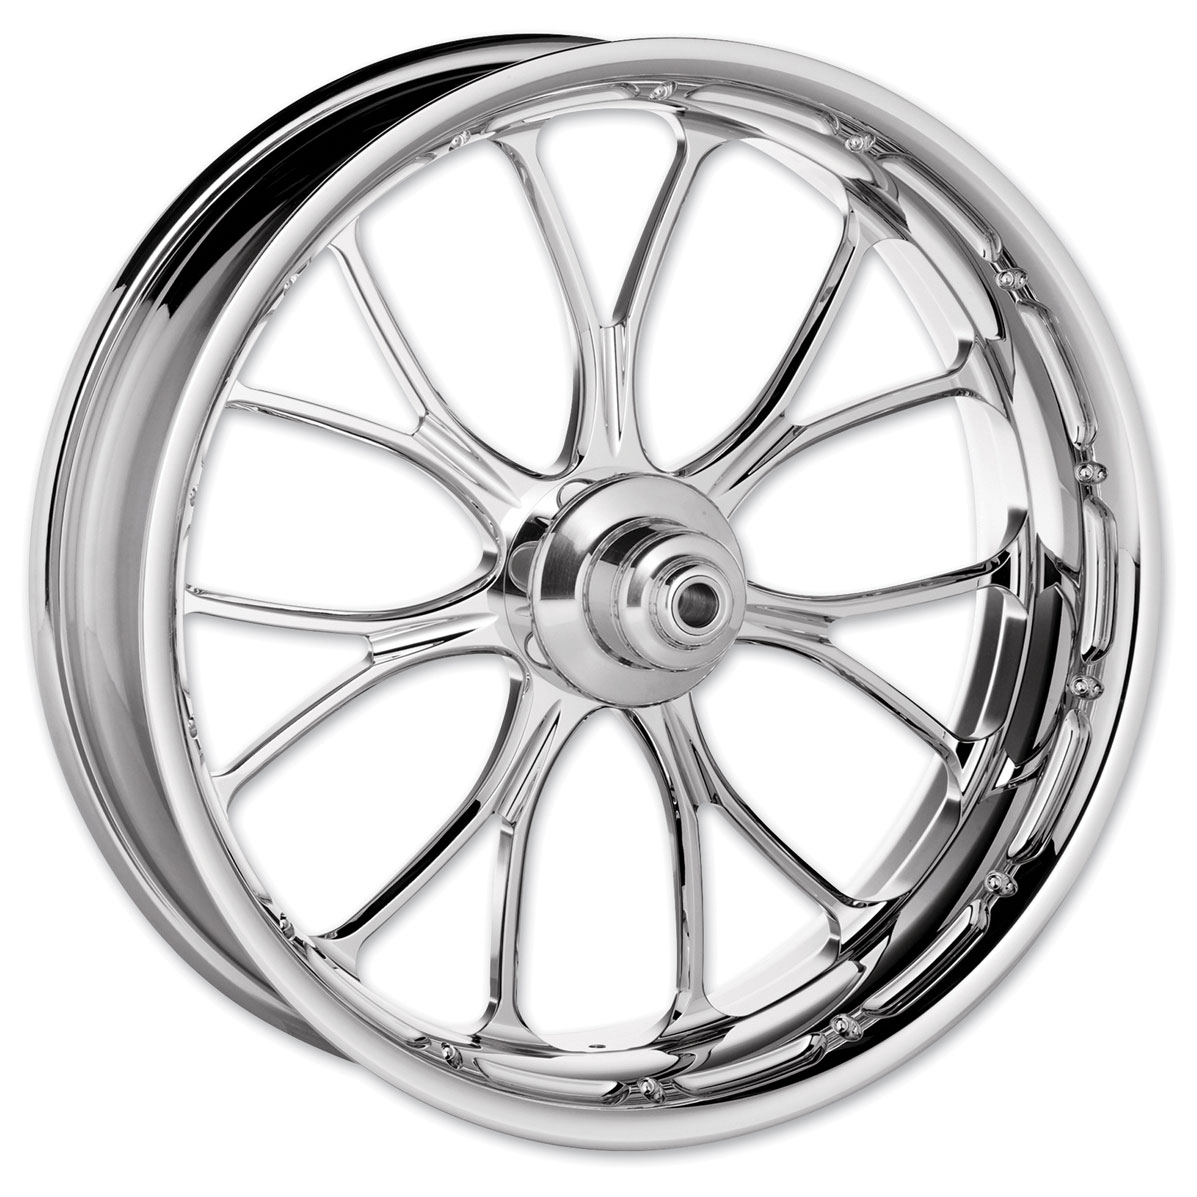 Performance Machine Heathen Chrome Rear Wheel, 18